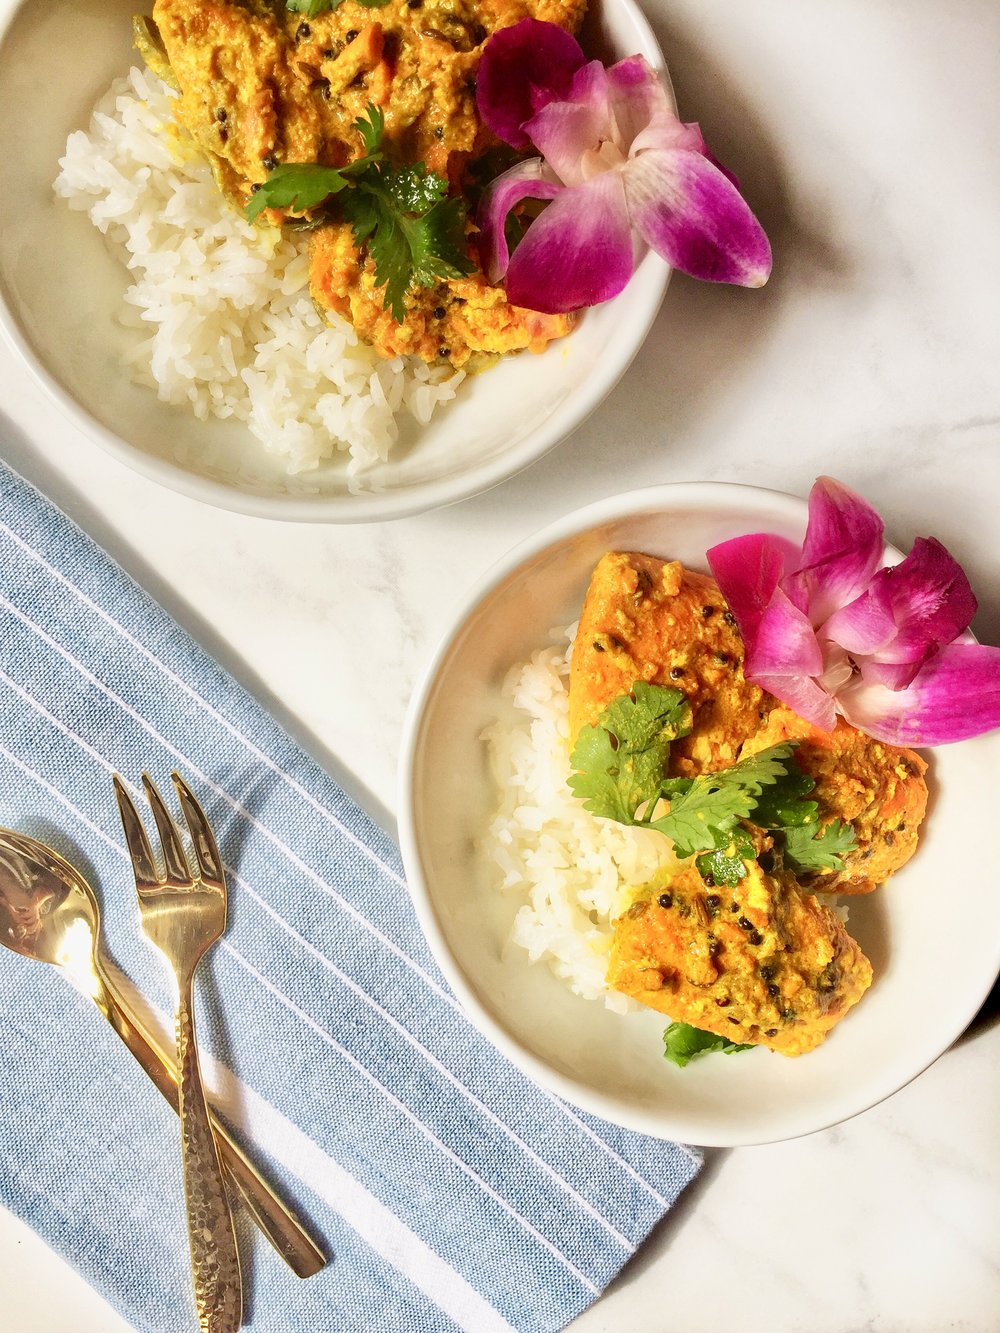 fragrant jasmine rice & tender salmon cooked in a rich, delectable mustard seed sauce